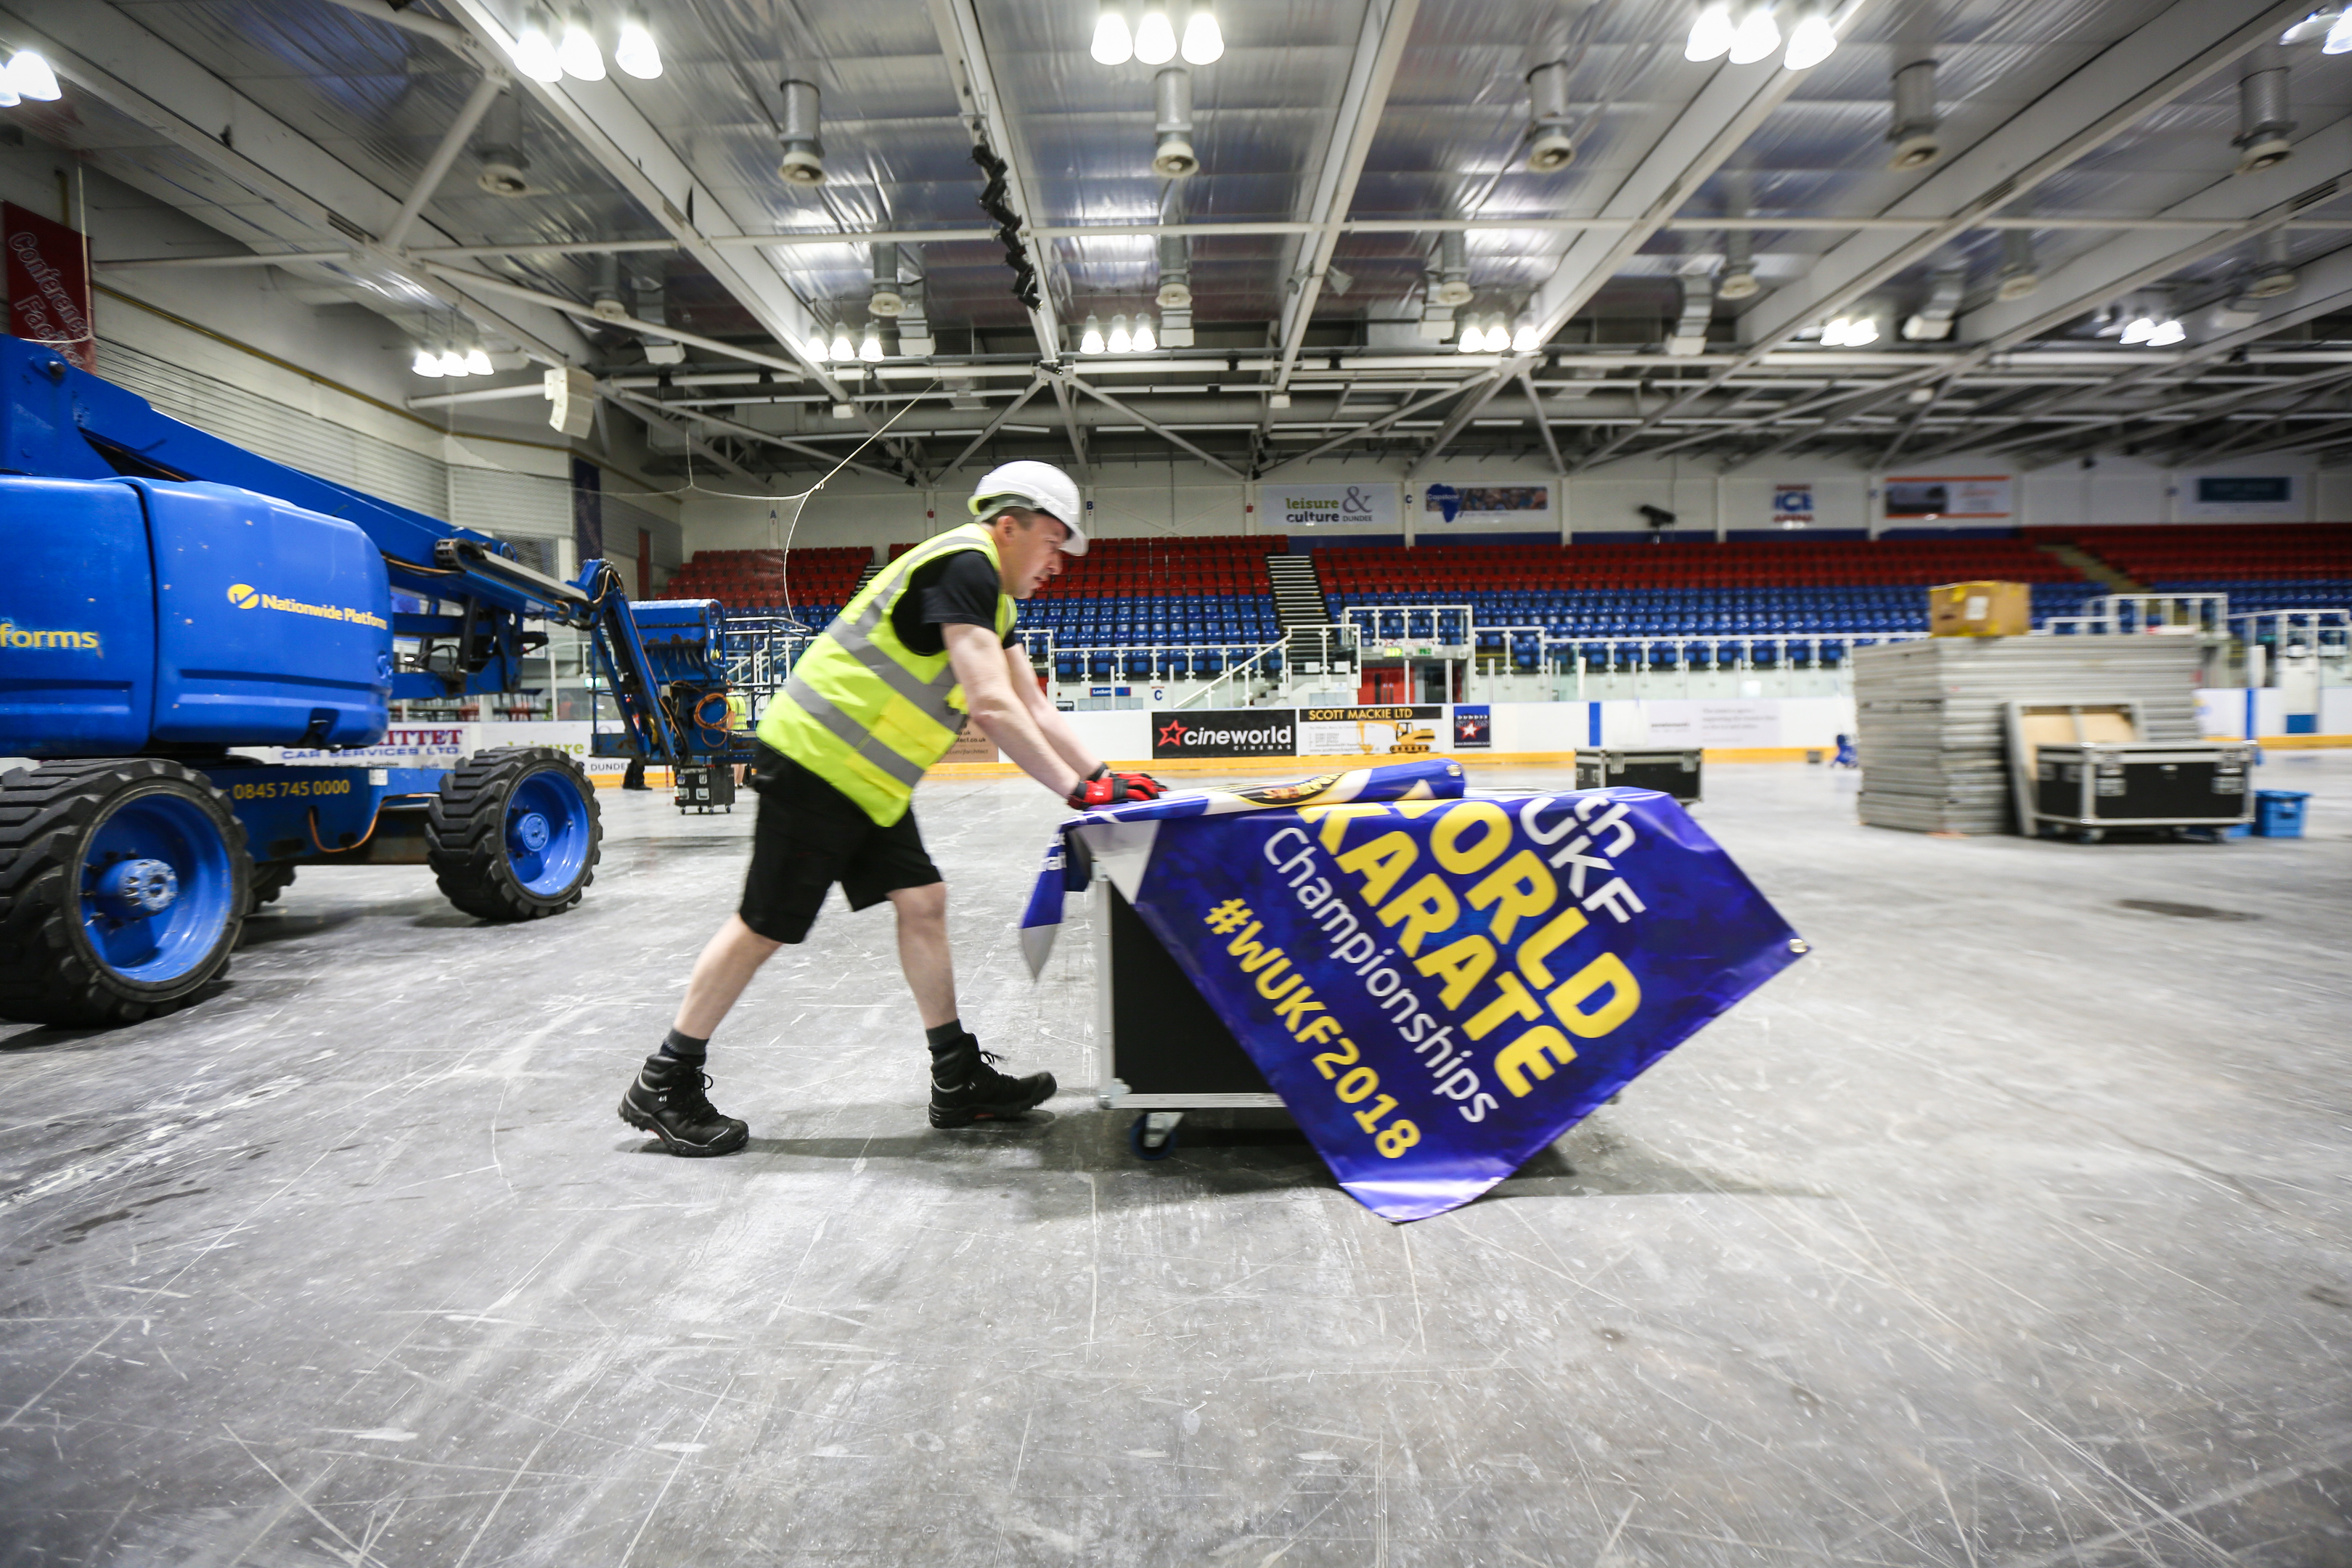 Ross McGill, event venue lead, helping work to transform Dundee Ice Arena for the WUKF world Championships